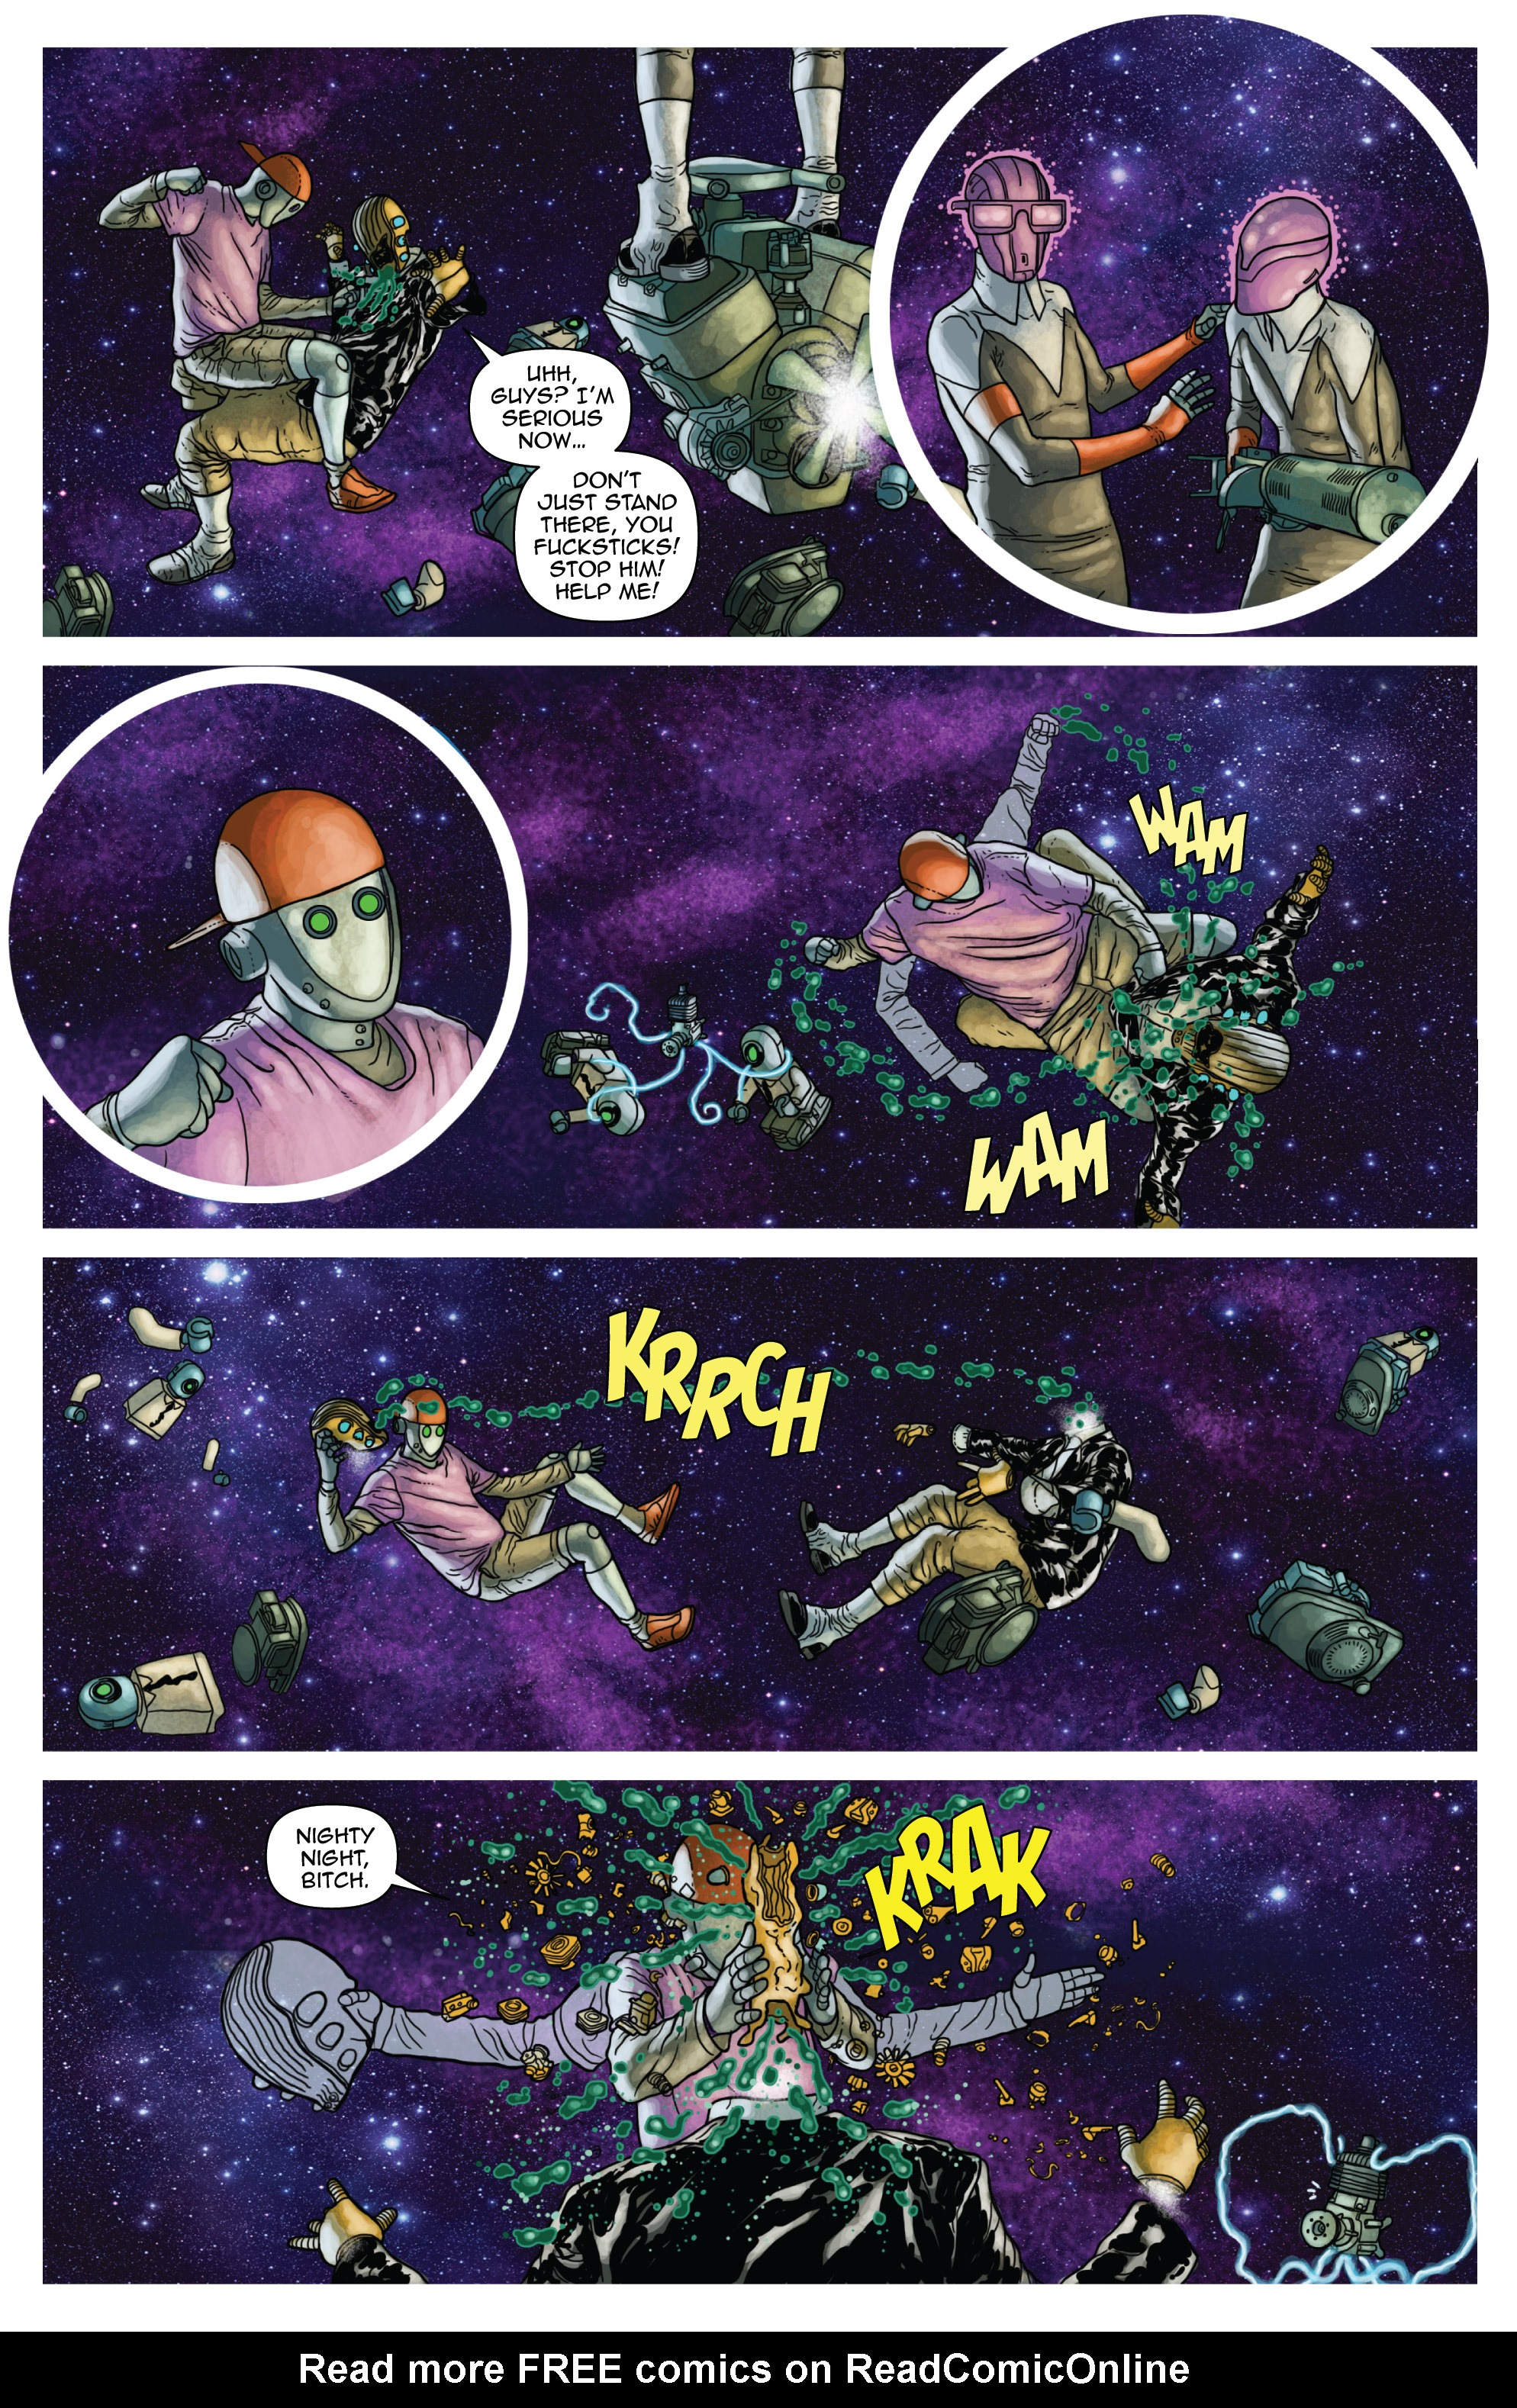 Read online D4VEocracy comic -  Issue #4 - 19